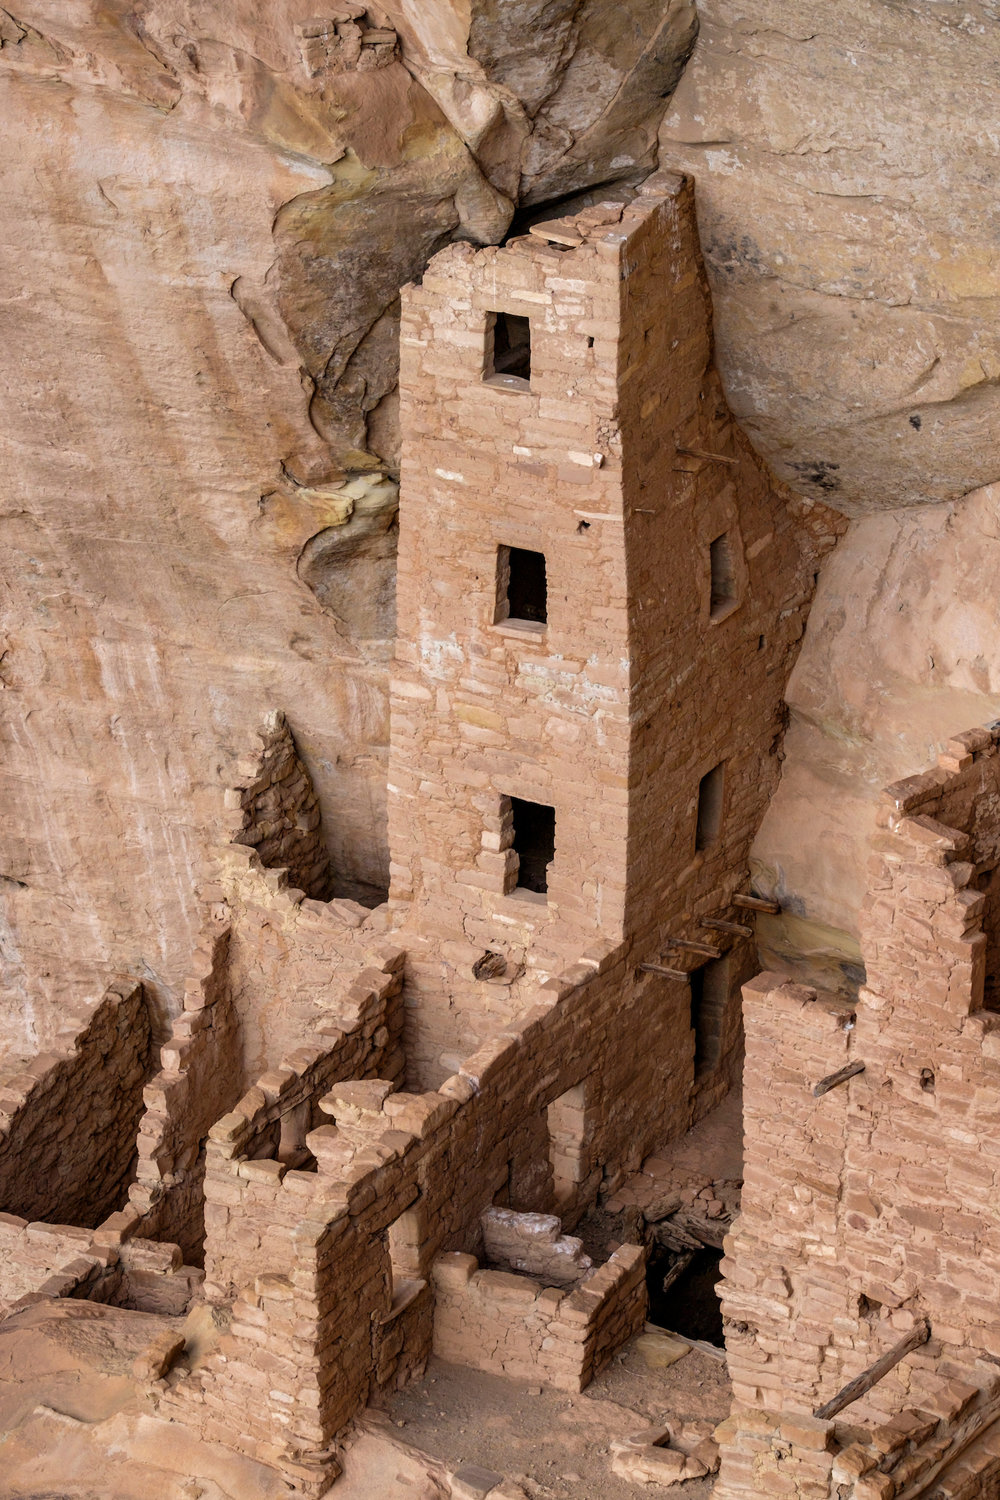 The 26-foot Square Tower House at Cliff Palace.